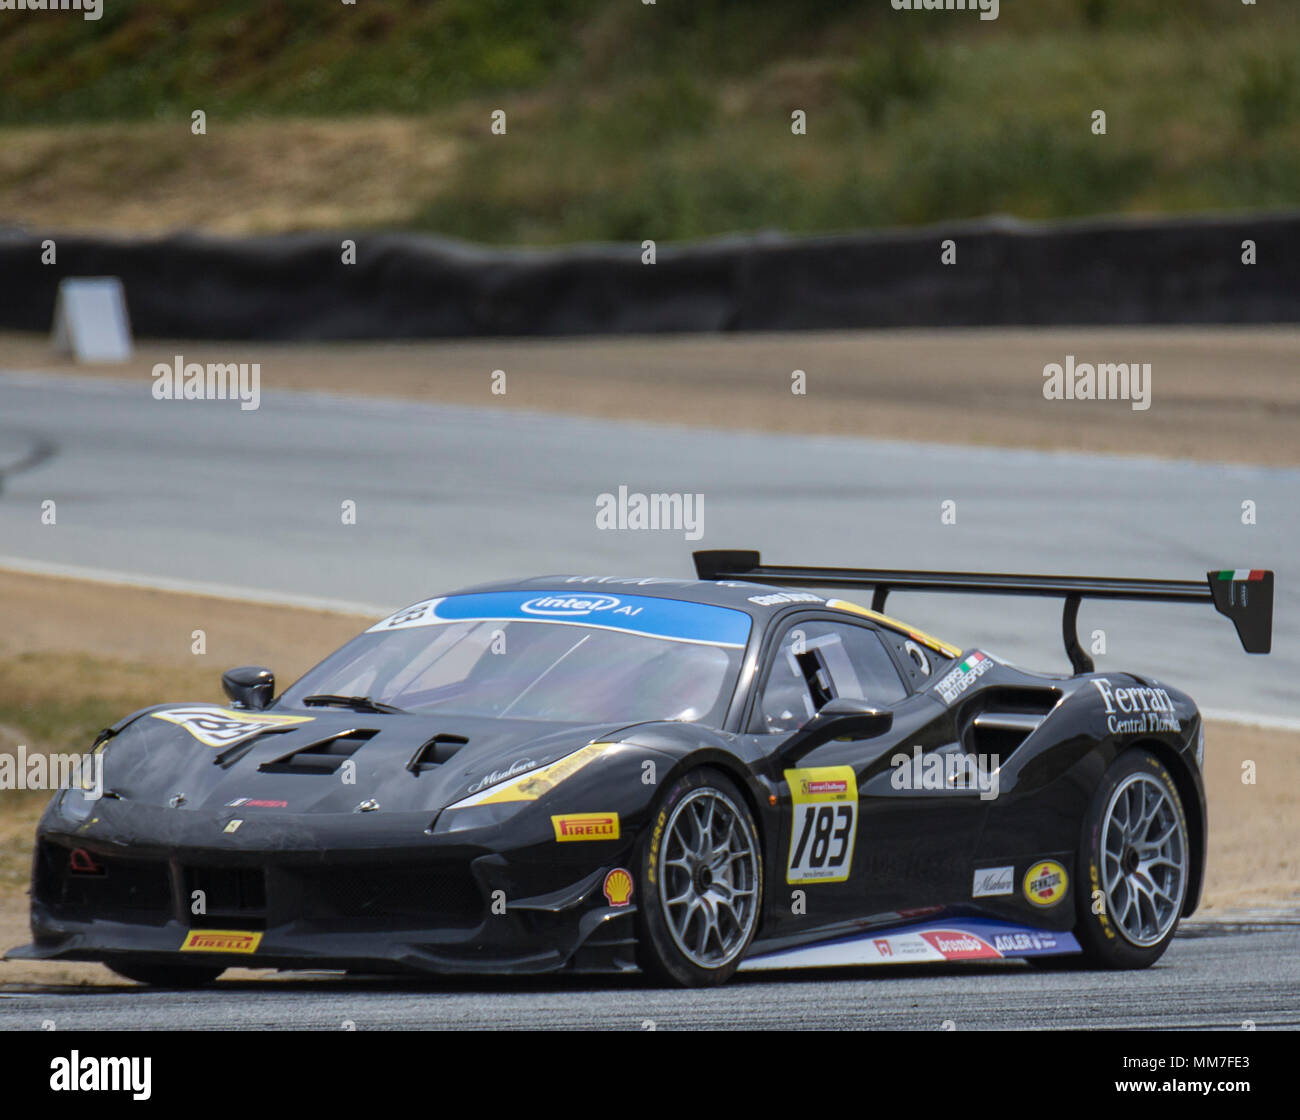 Monterey, CA, USA. 6th May, 2018. A. #183 Chas Bruck coming out of turn 3 during the Ferrari Challenge Coppa Shell Race 2 at WeatherTech Raceway Laguna Seca Monterey, CA Thurman James/CSM/Alamy Live News Stock Photo